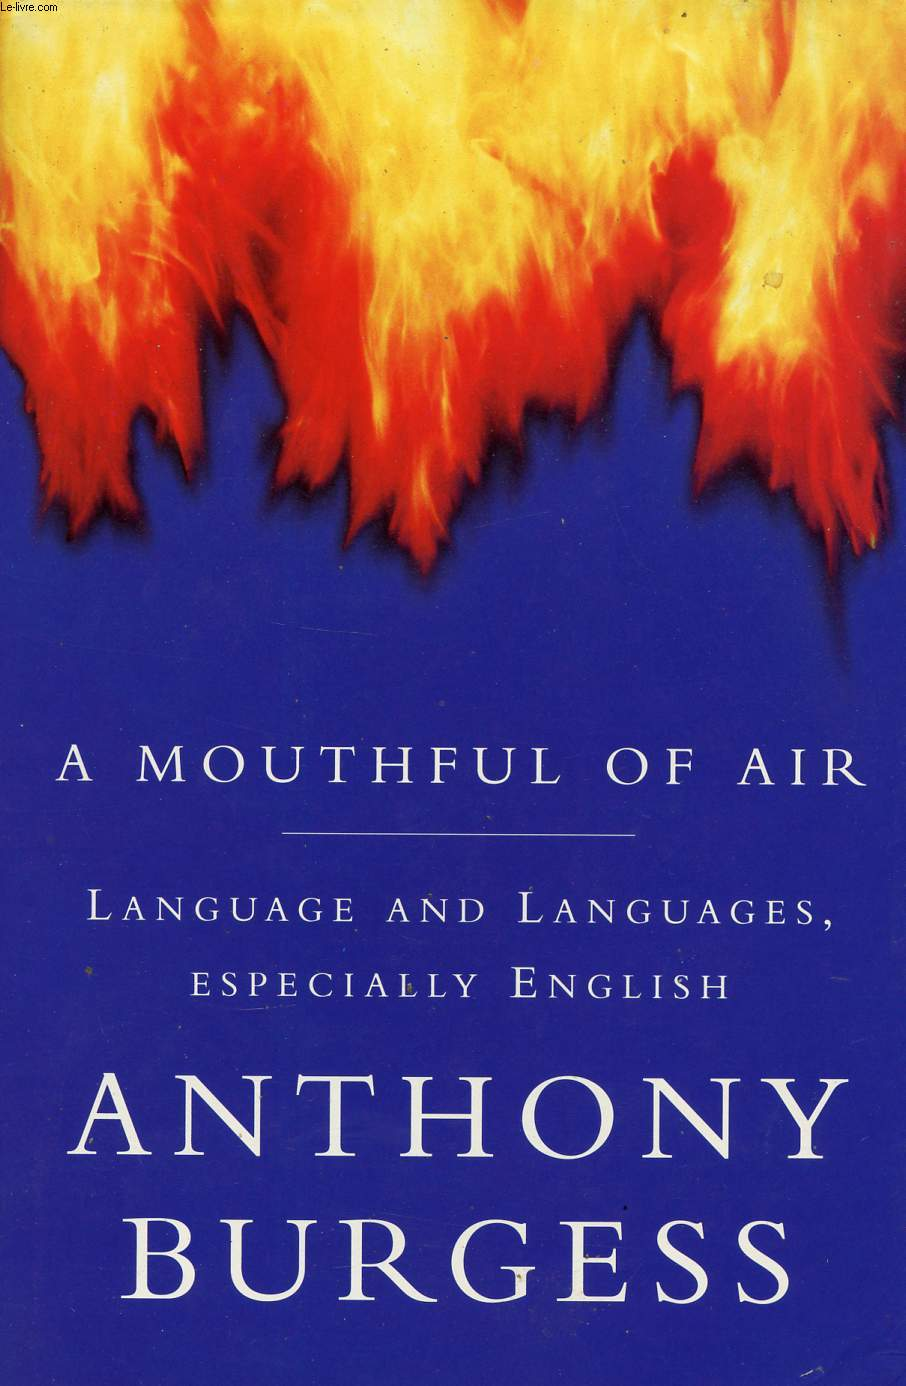 A MOUTHFUL OF AIR, LANGUAGE AND LANGUAGES, ESPECIALLY ENGLISH